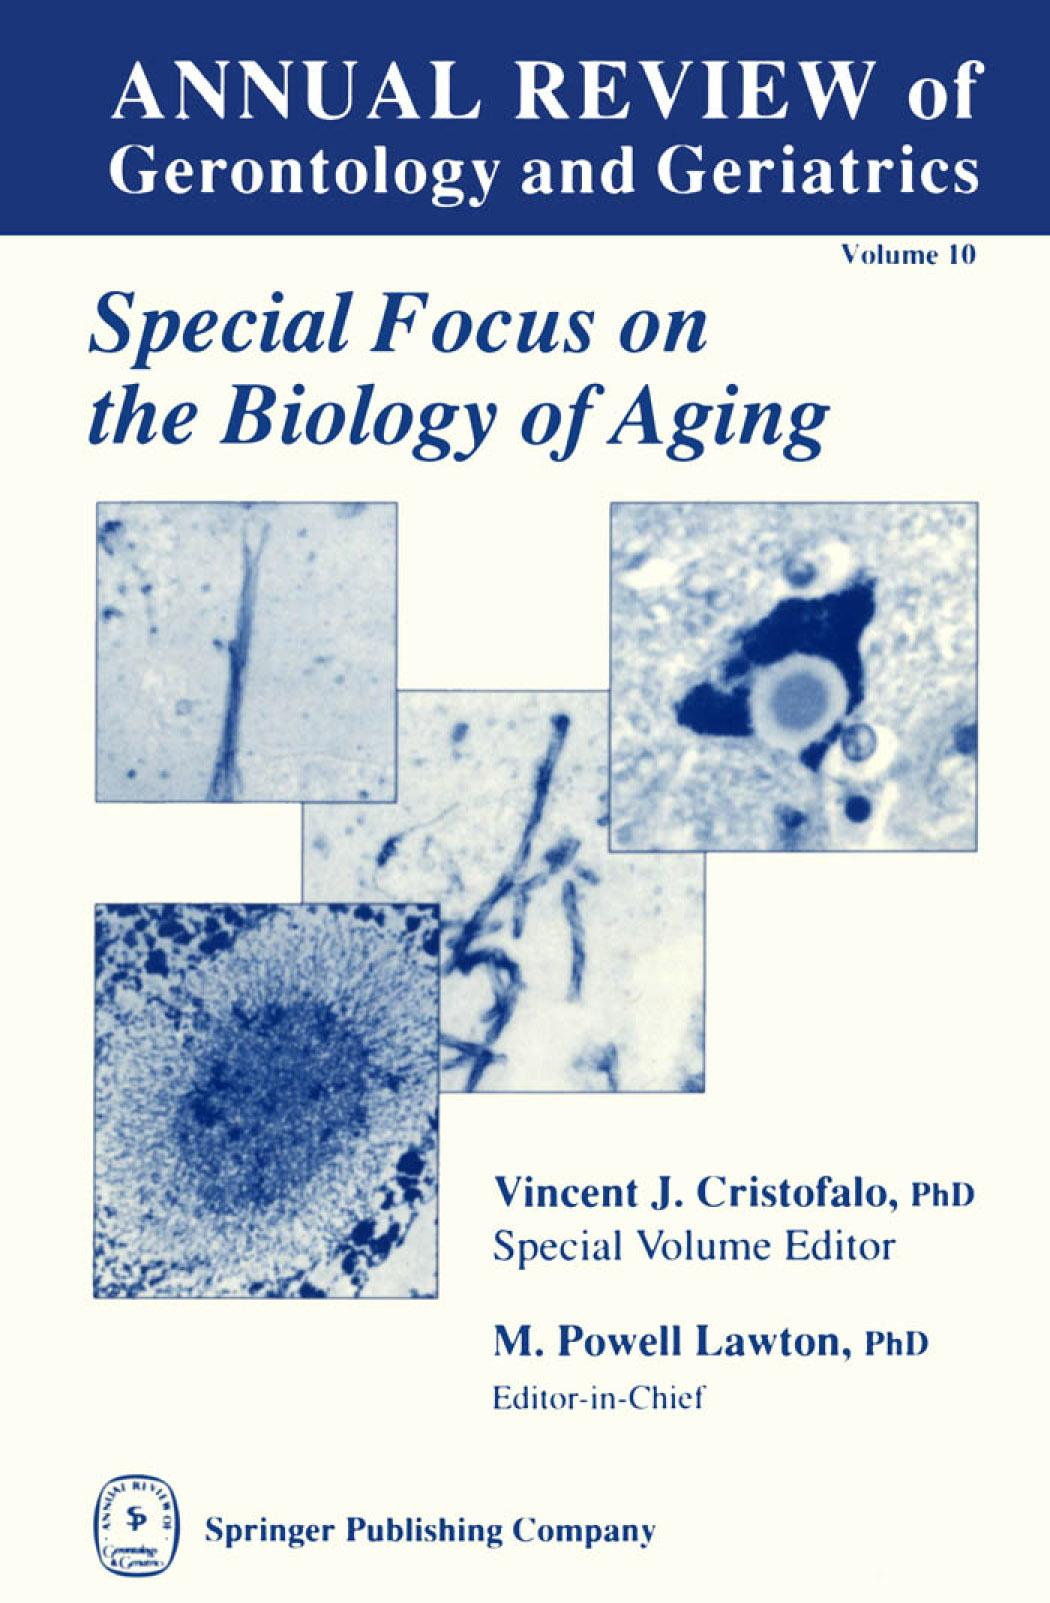 Special Focus on the Biology of Aging. Annual Review of Gerontology and Geriatrics Volume 10. EB9780826164889